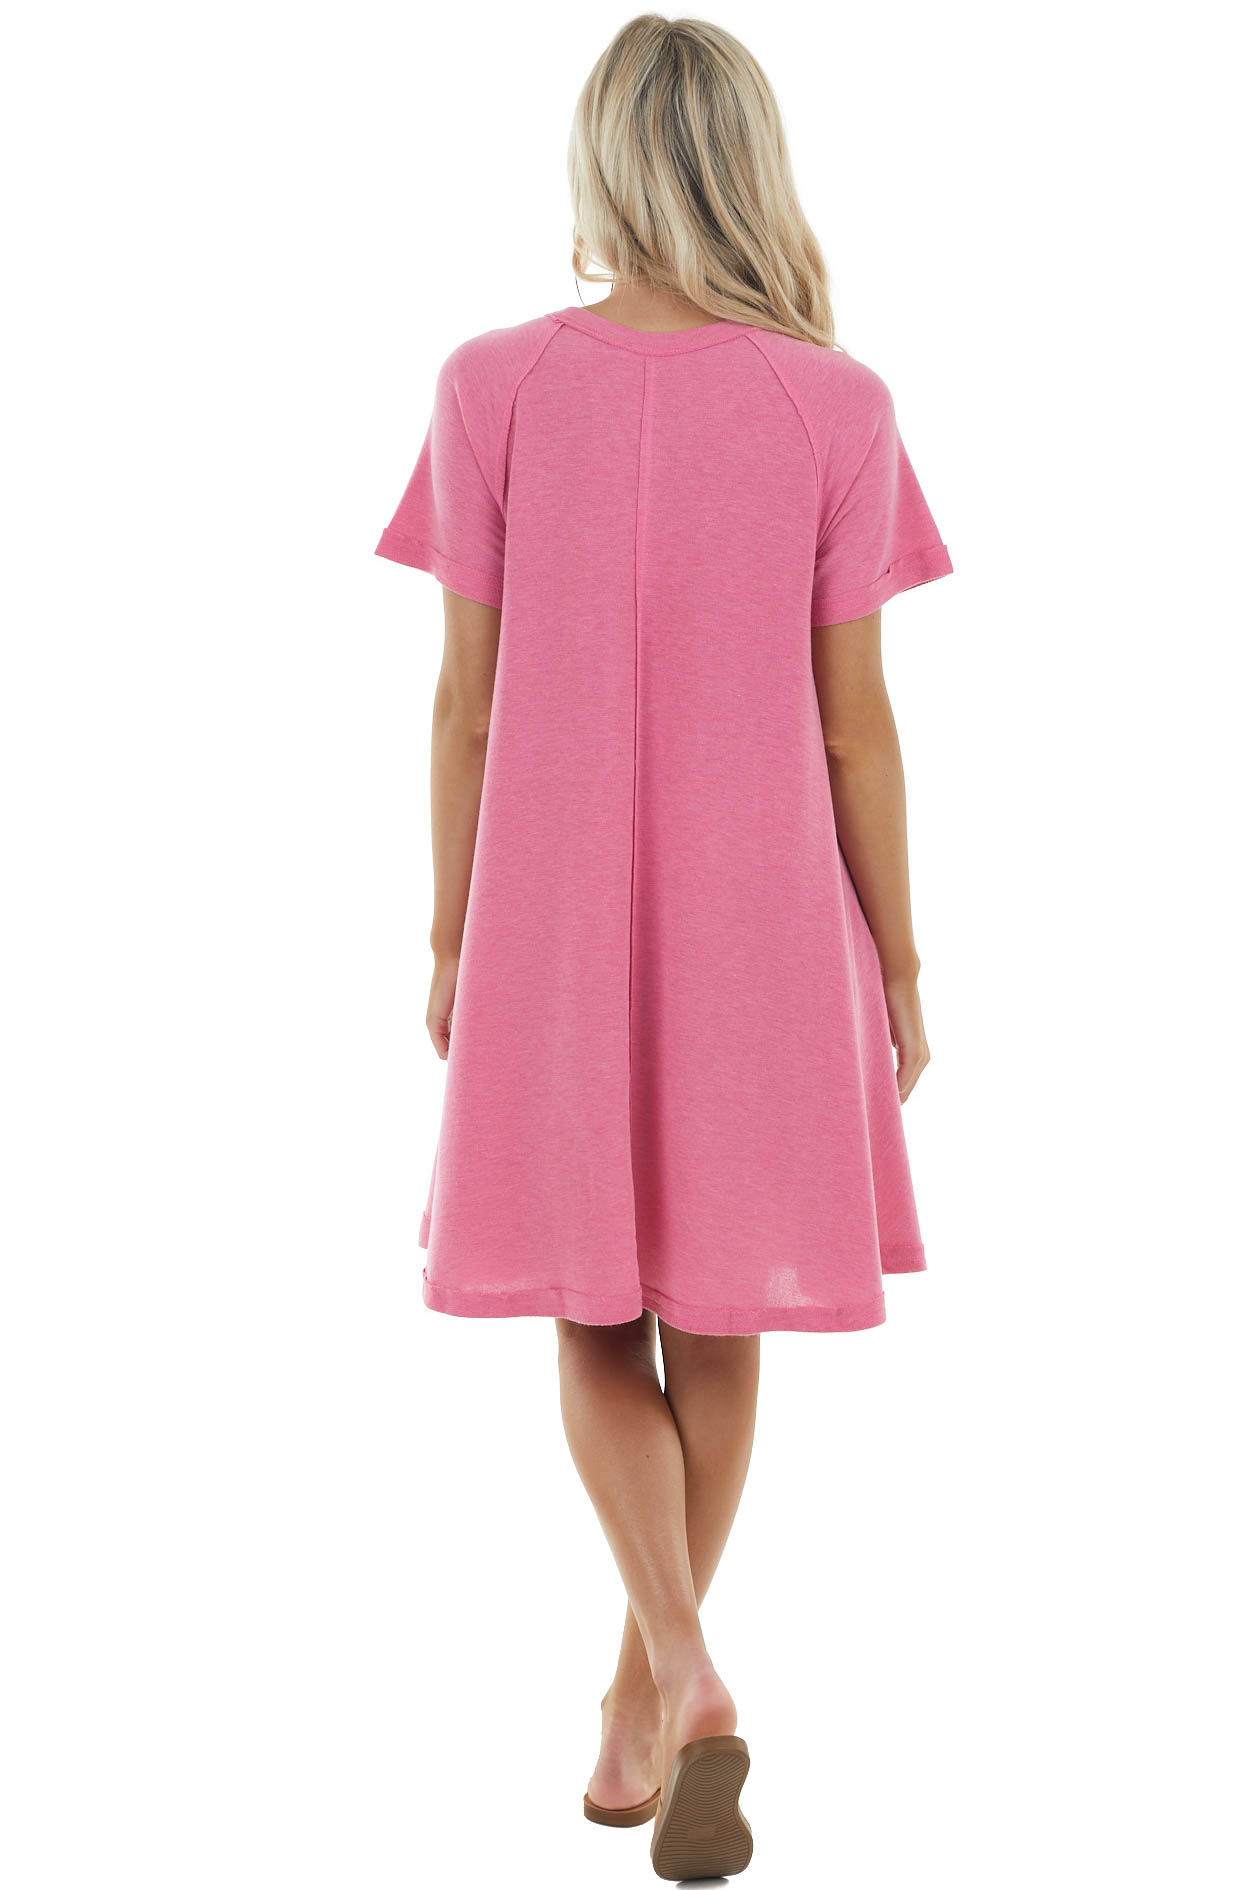 Heathered Hibiscus Short Swing Dress with Raw Edge Details